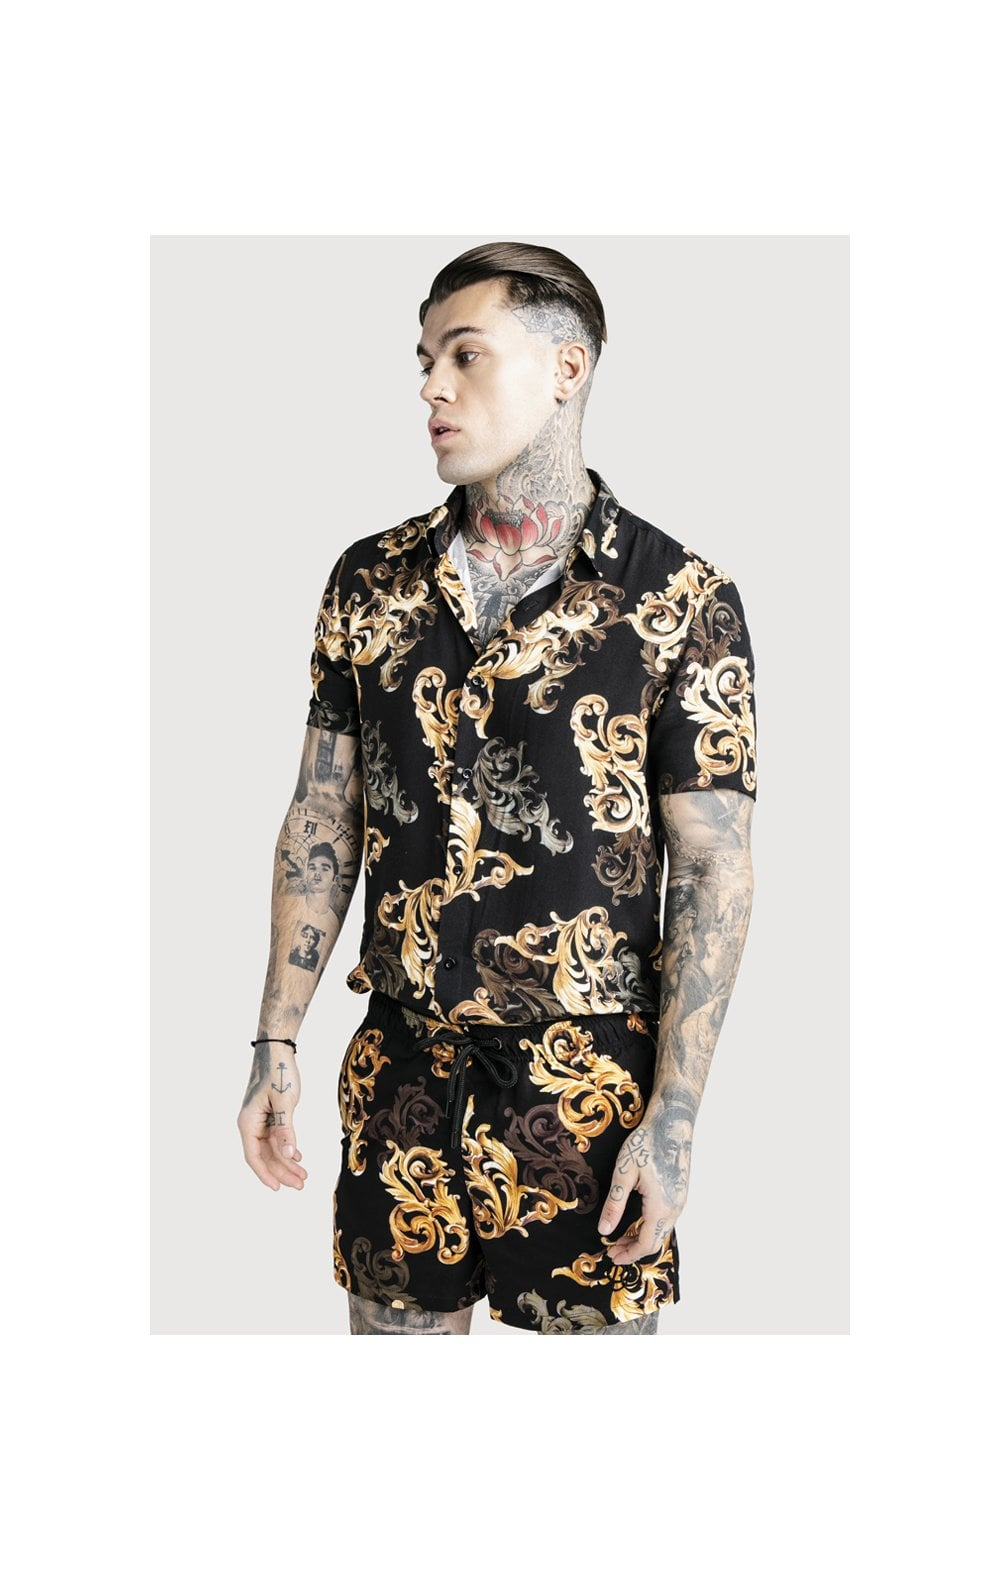 SikSilk x Dani Alves Swim Shorts - Black & Gold (4)